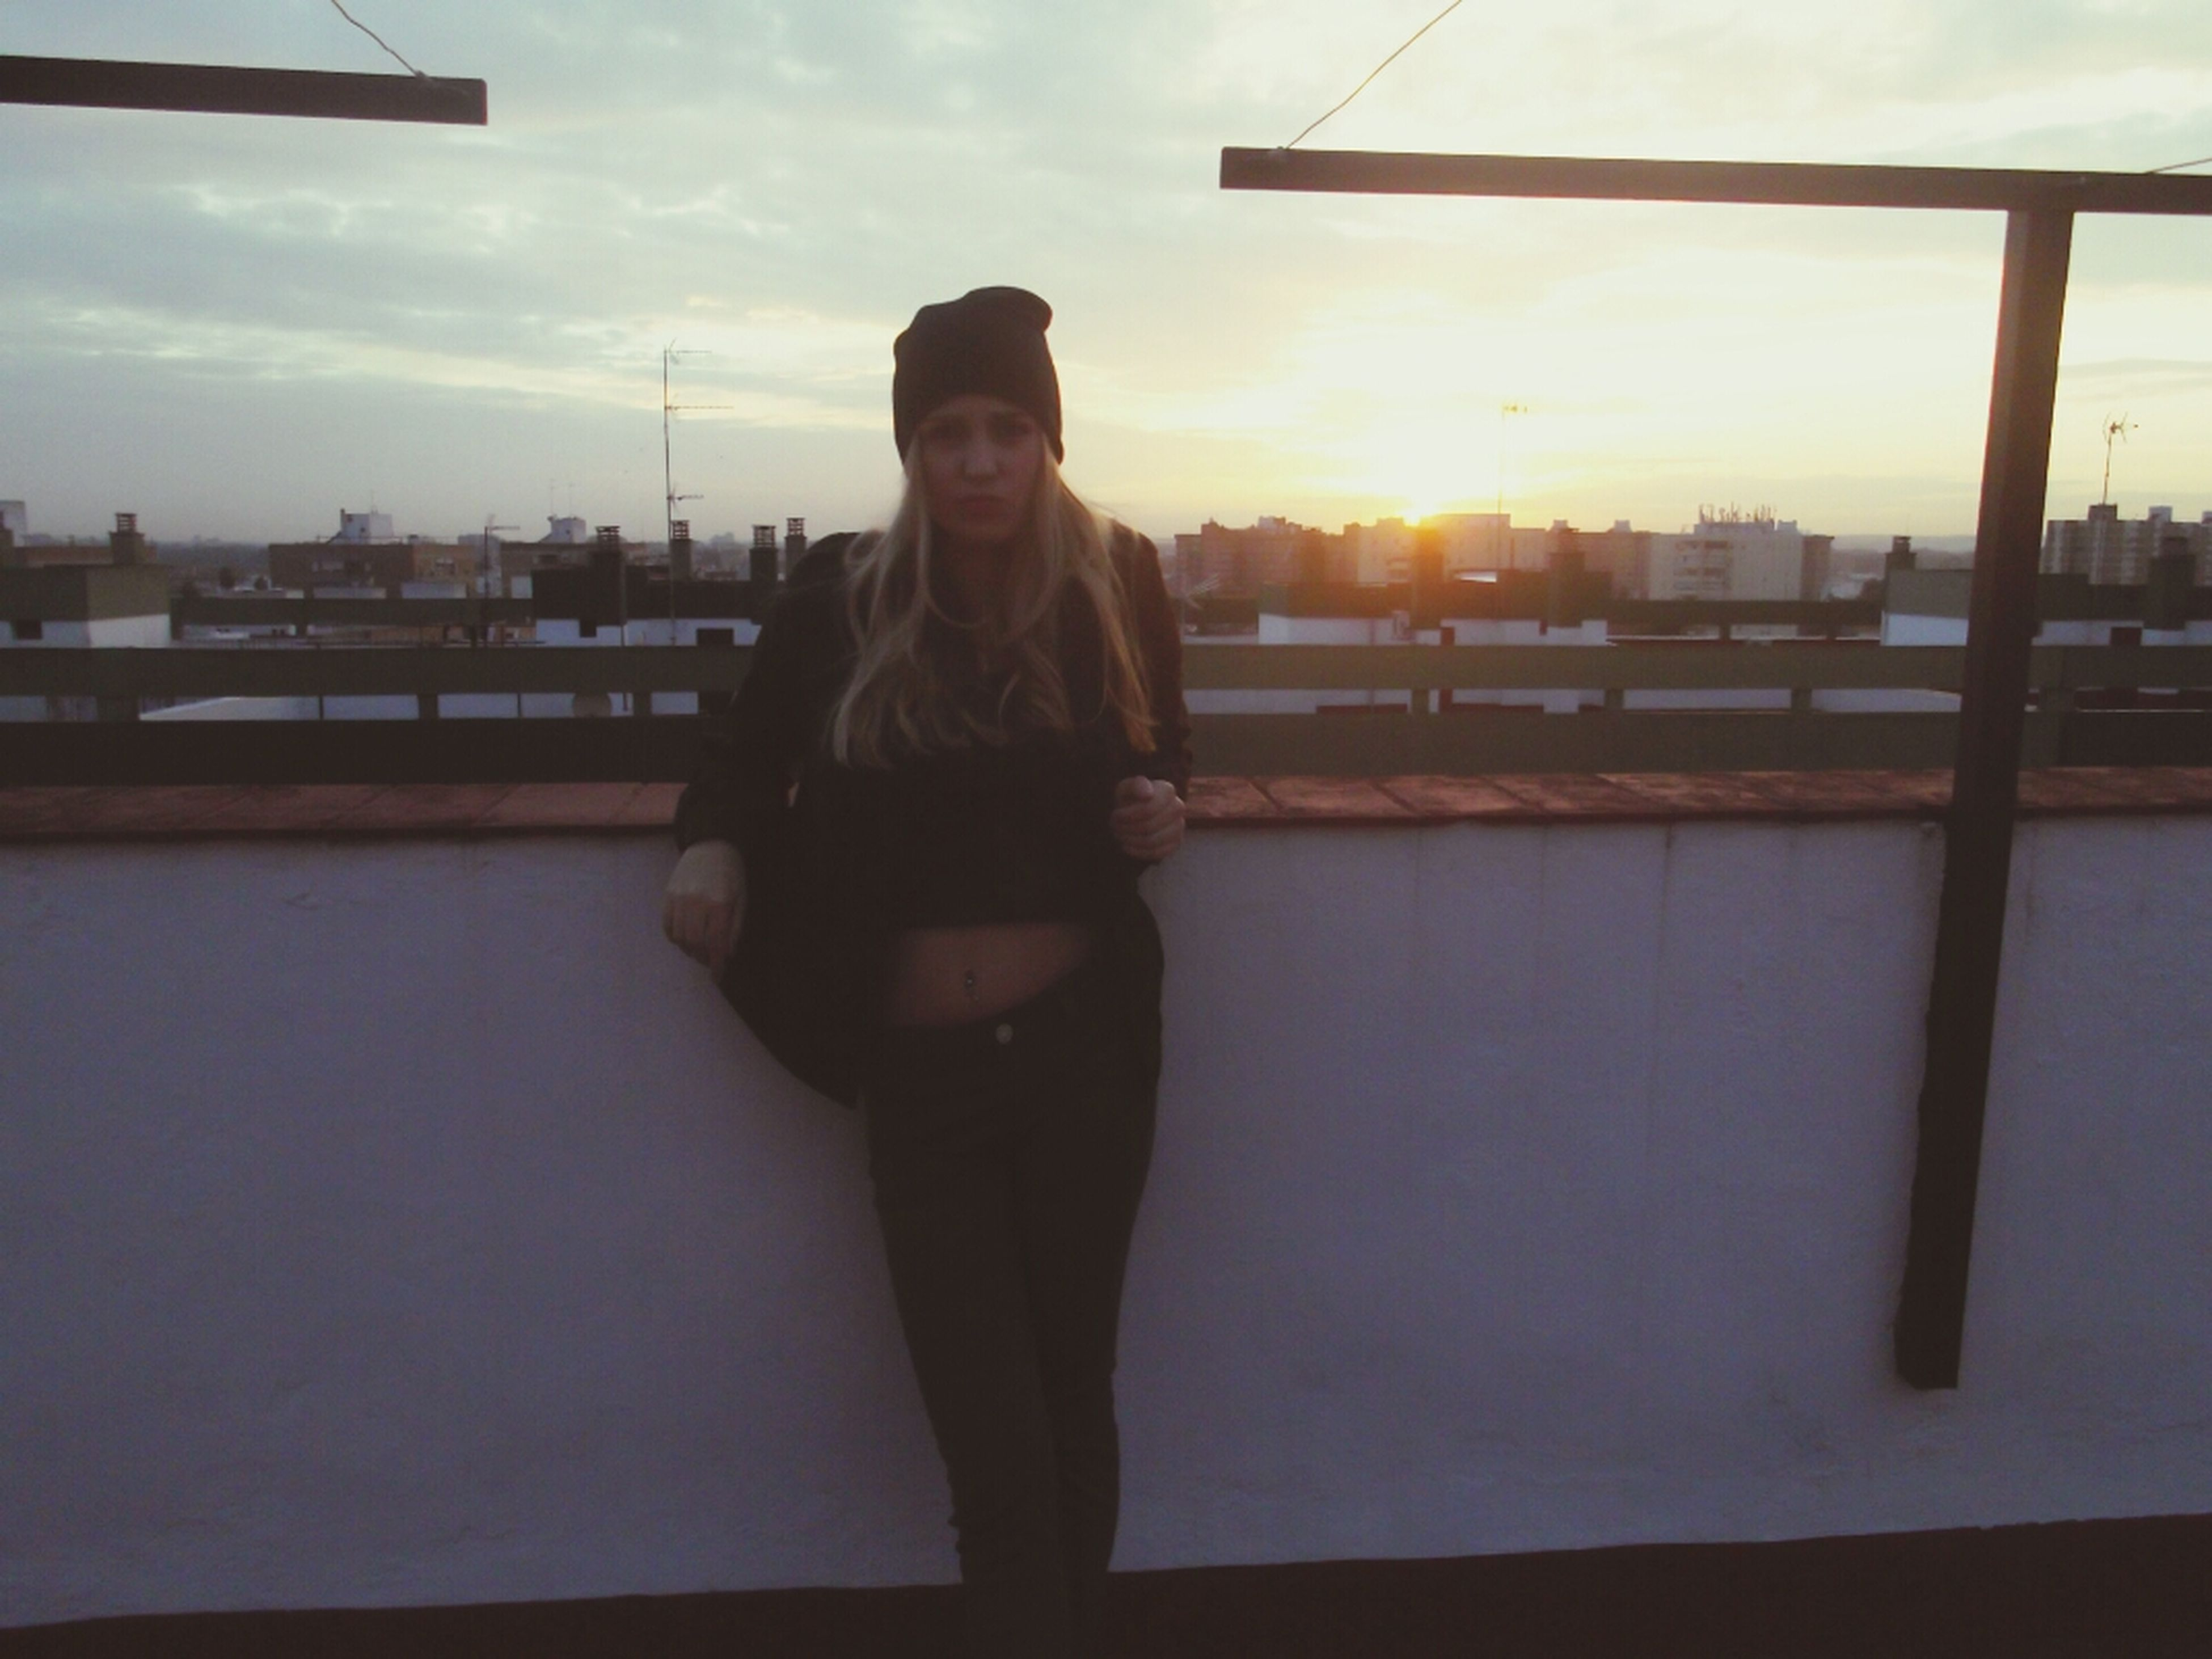 standing, lifestyles, young adult, building exterior, built structure, architecture, casual clothing, leisure activity, full length, three quarter length, sky, sunset, person, young women, railing, front view, city, sunlight